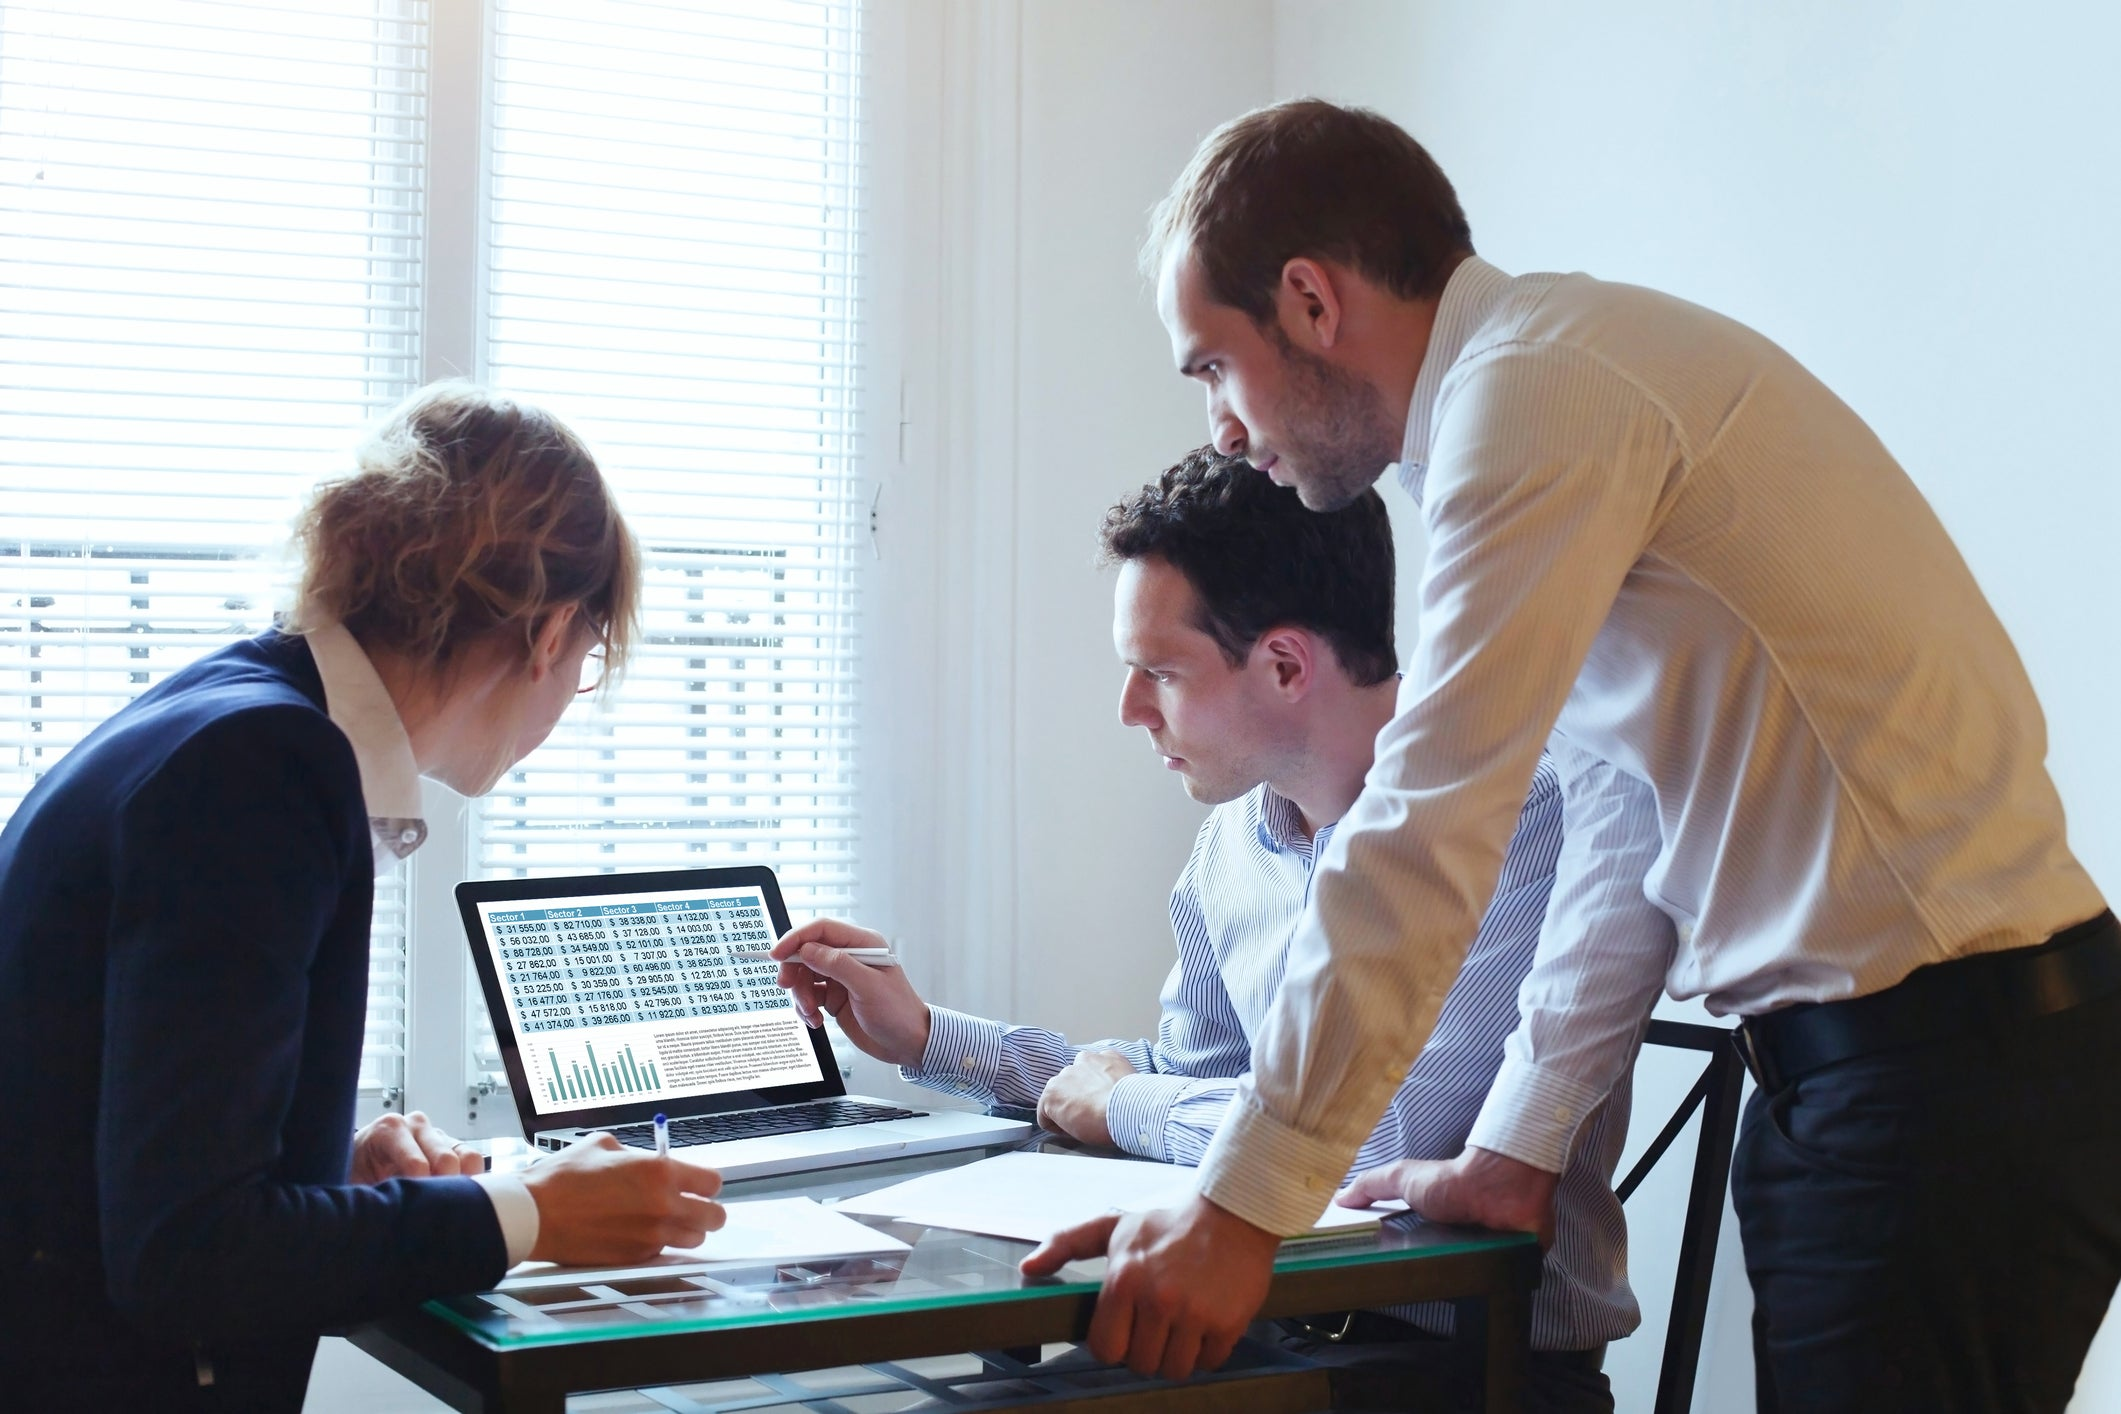 A group of three office workers gather around a computer displaying charts.